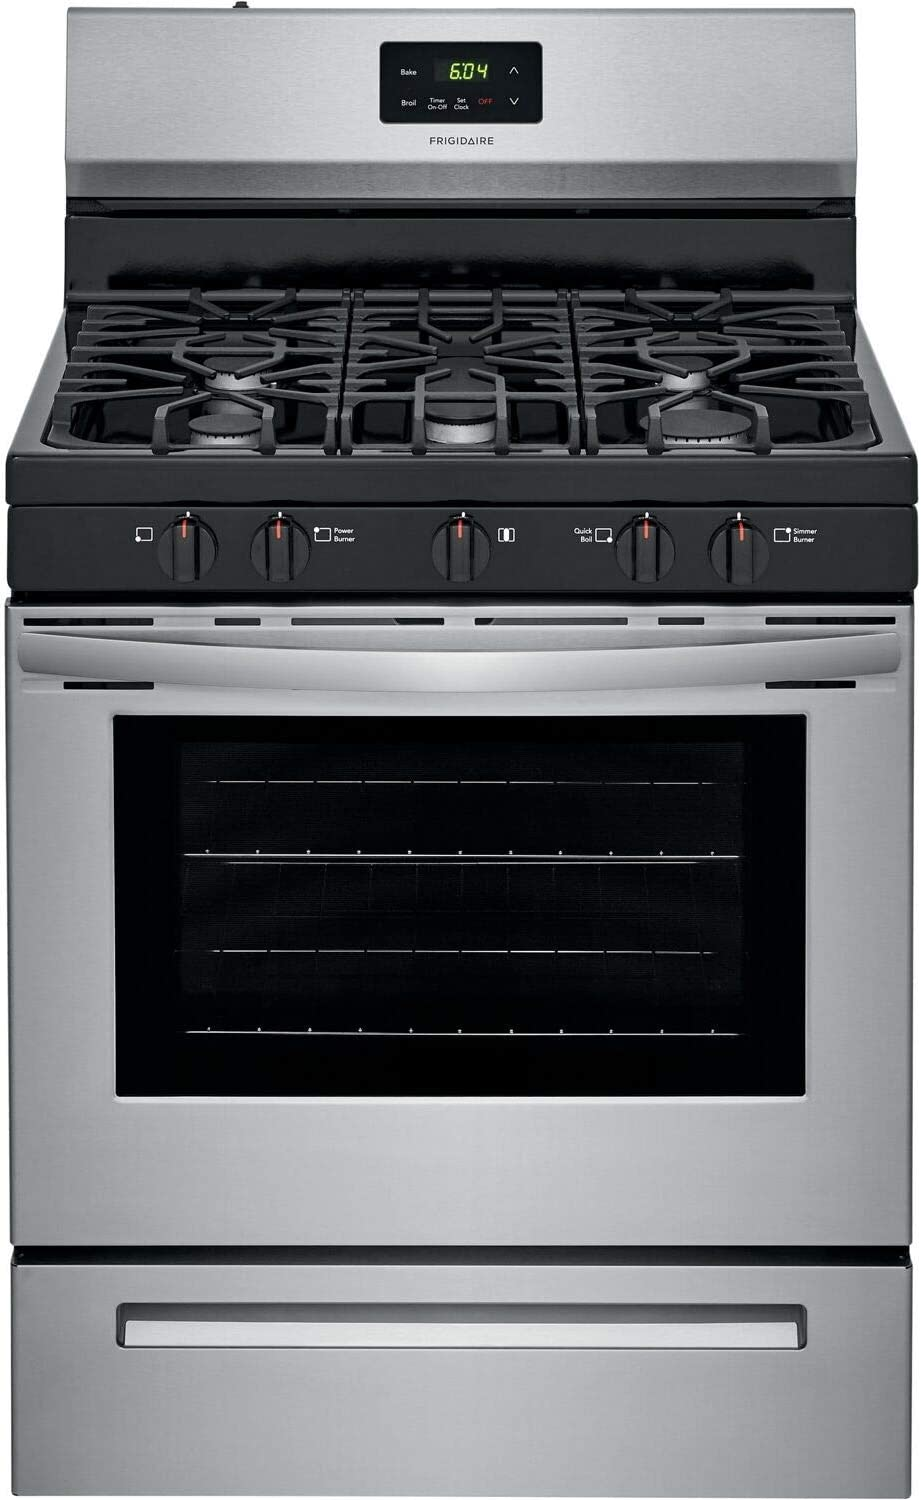 "Frigidaire FCRG3052AS 30"" Gas Freestanding Range, Cont Grates Manual Clean - Stainless"